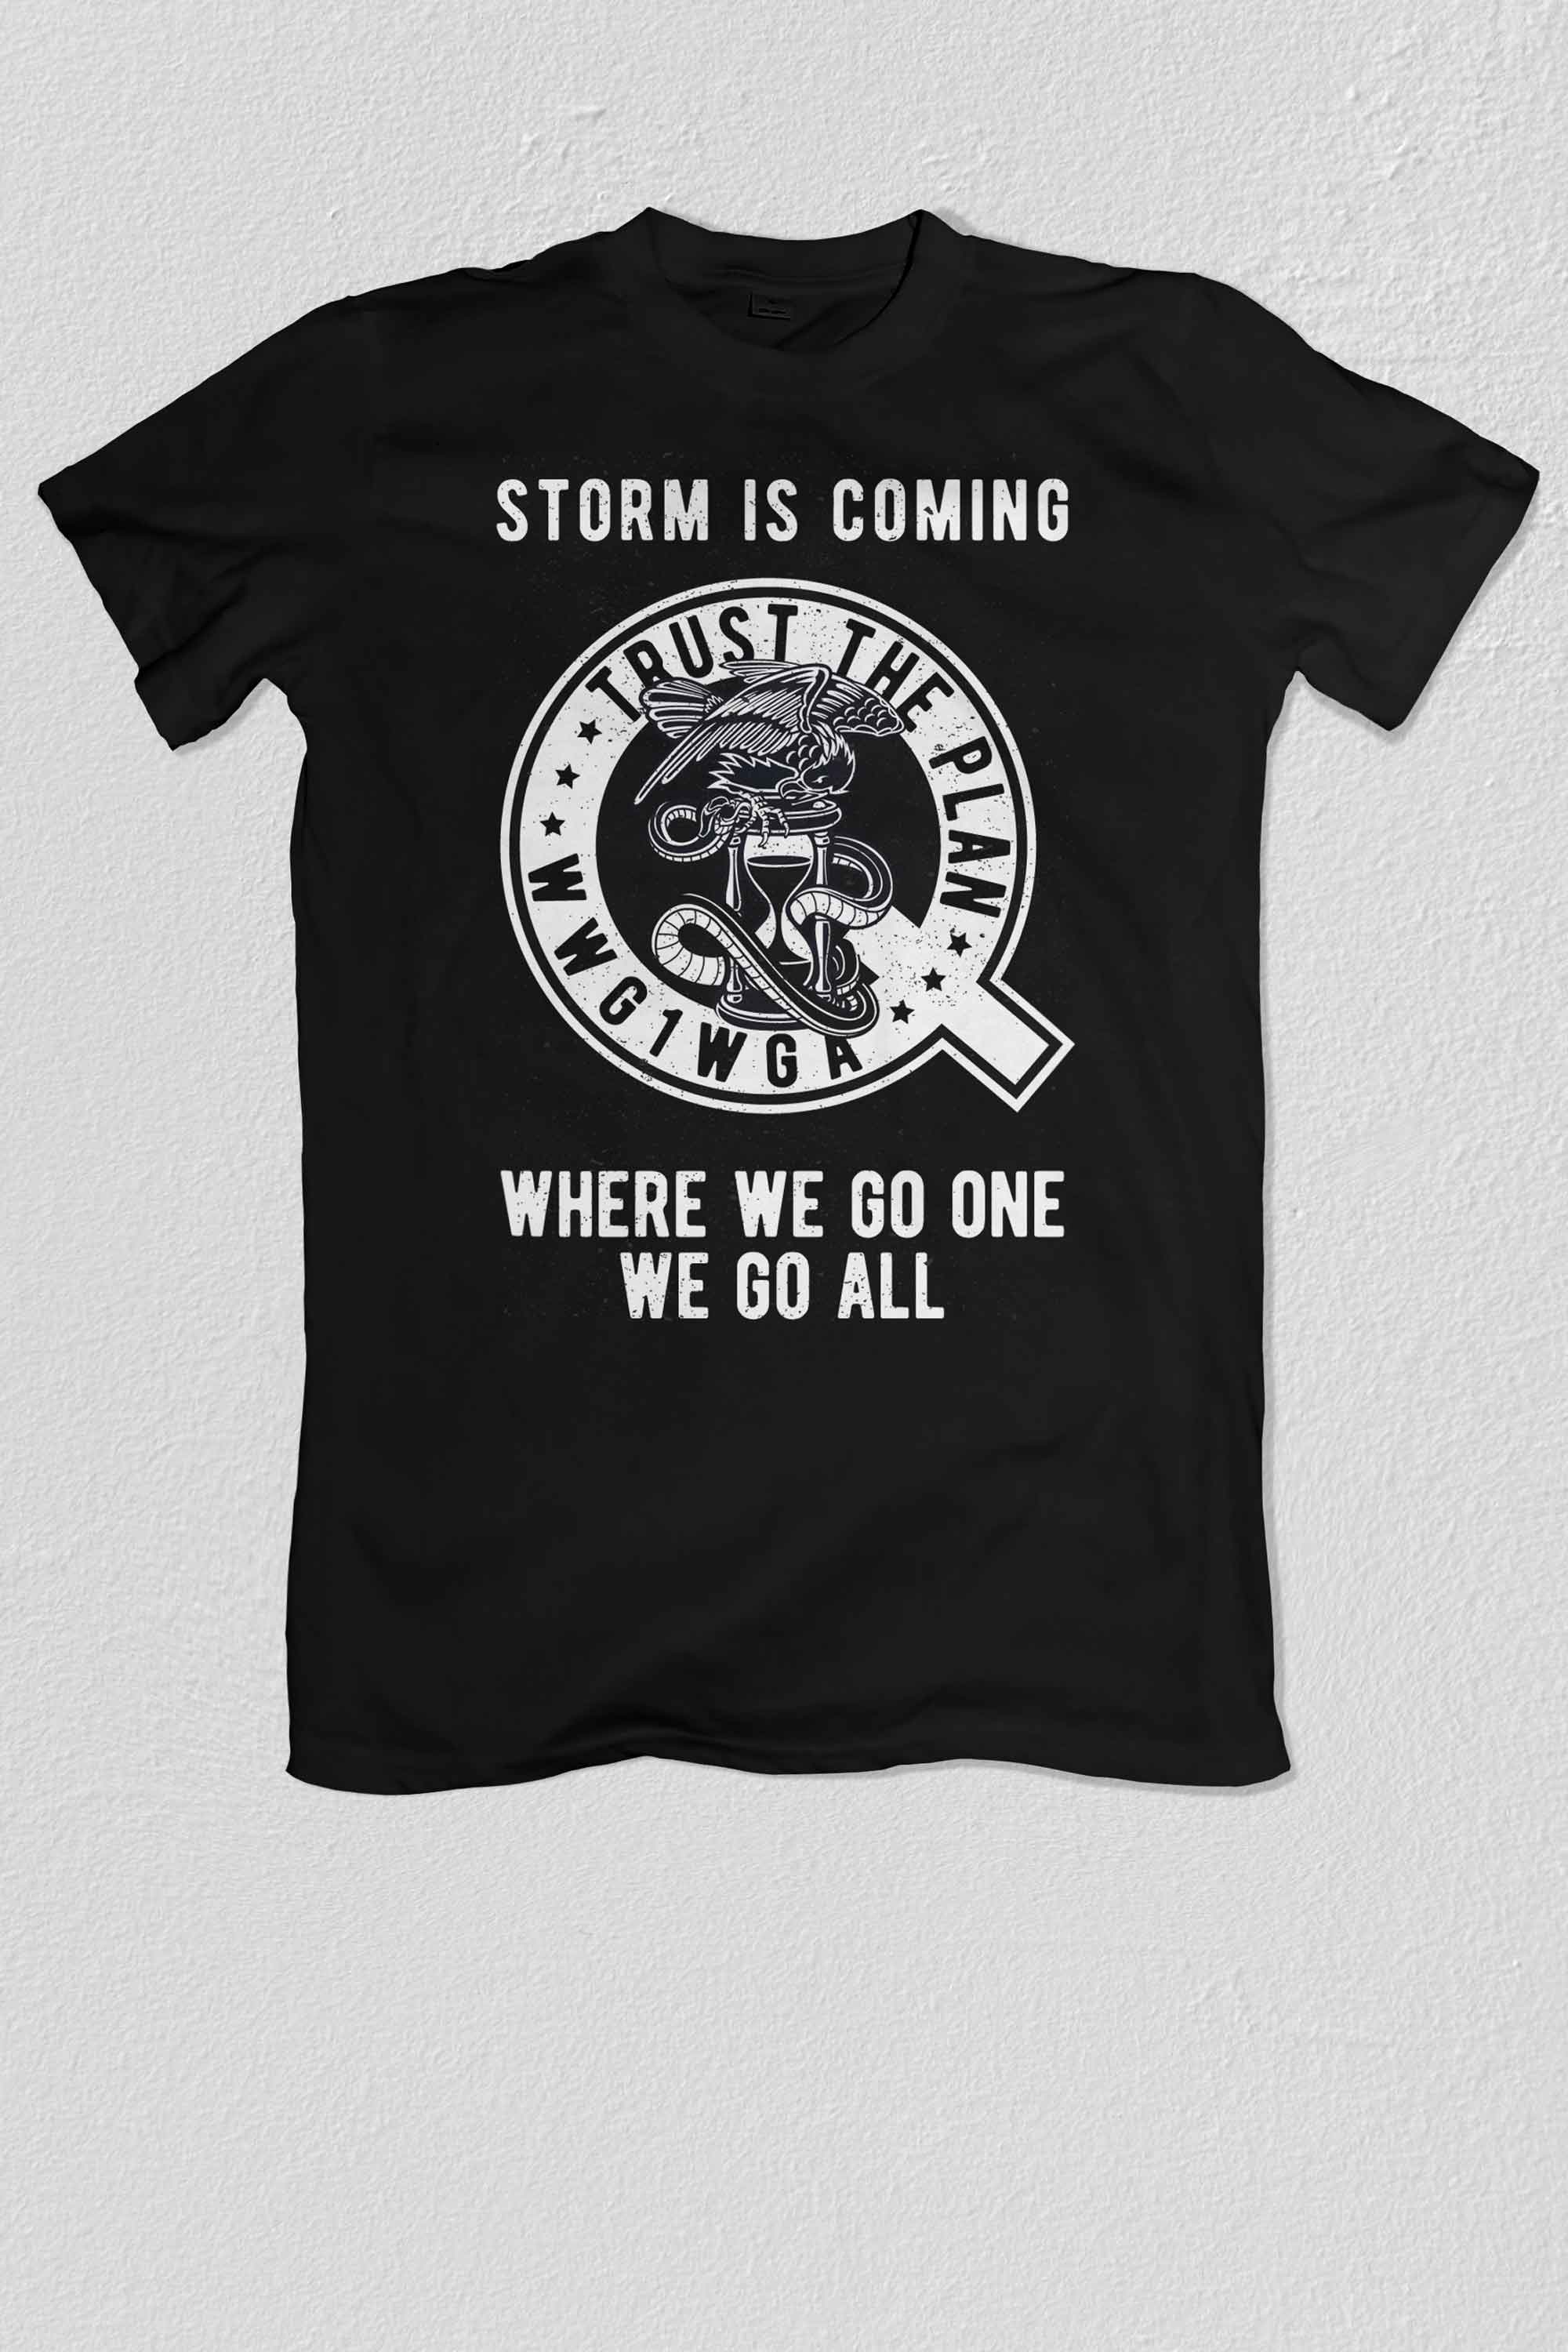 Qanon, Q, Storm is Coming T-shirt Hourglass - American Made